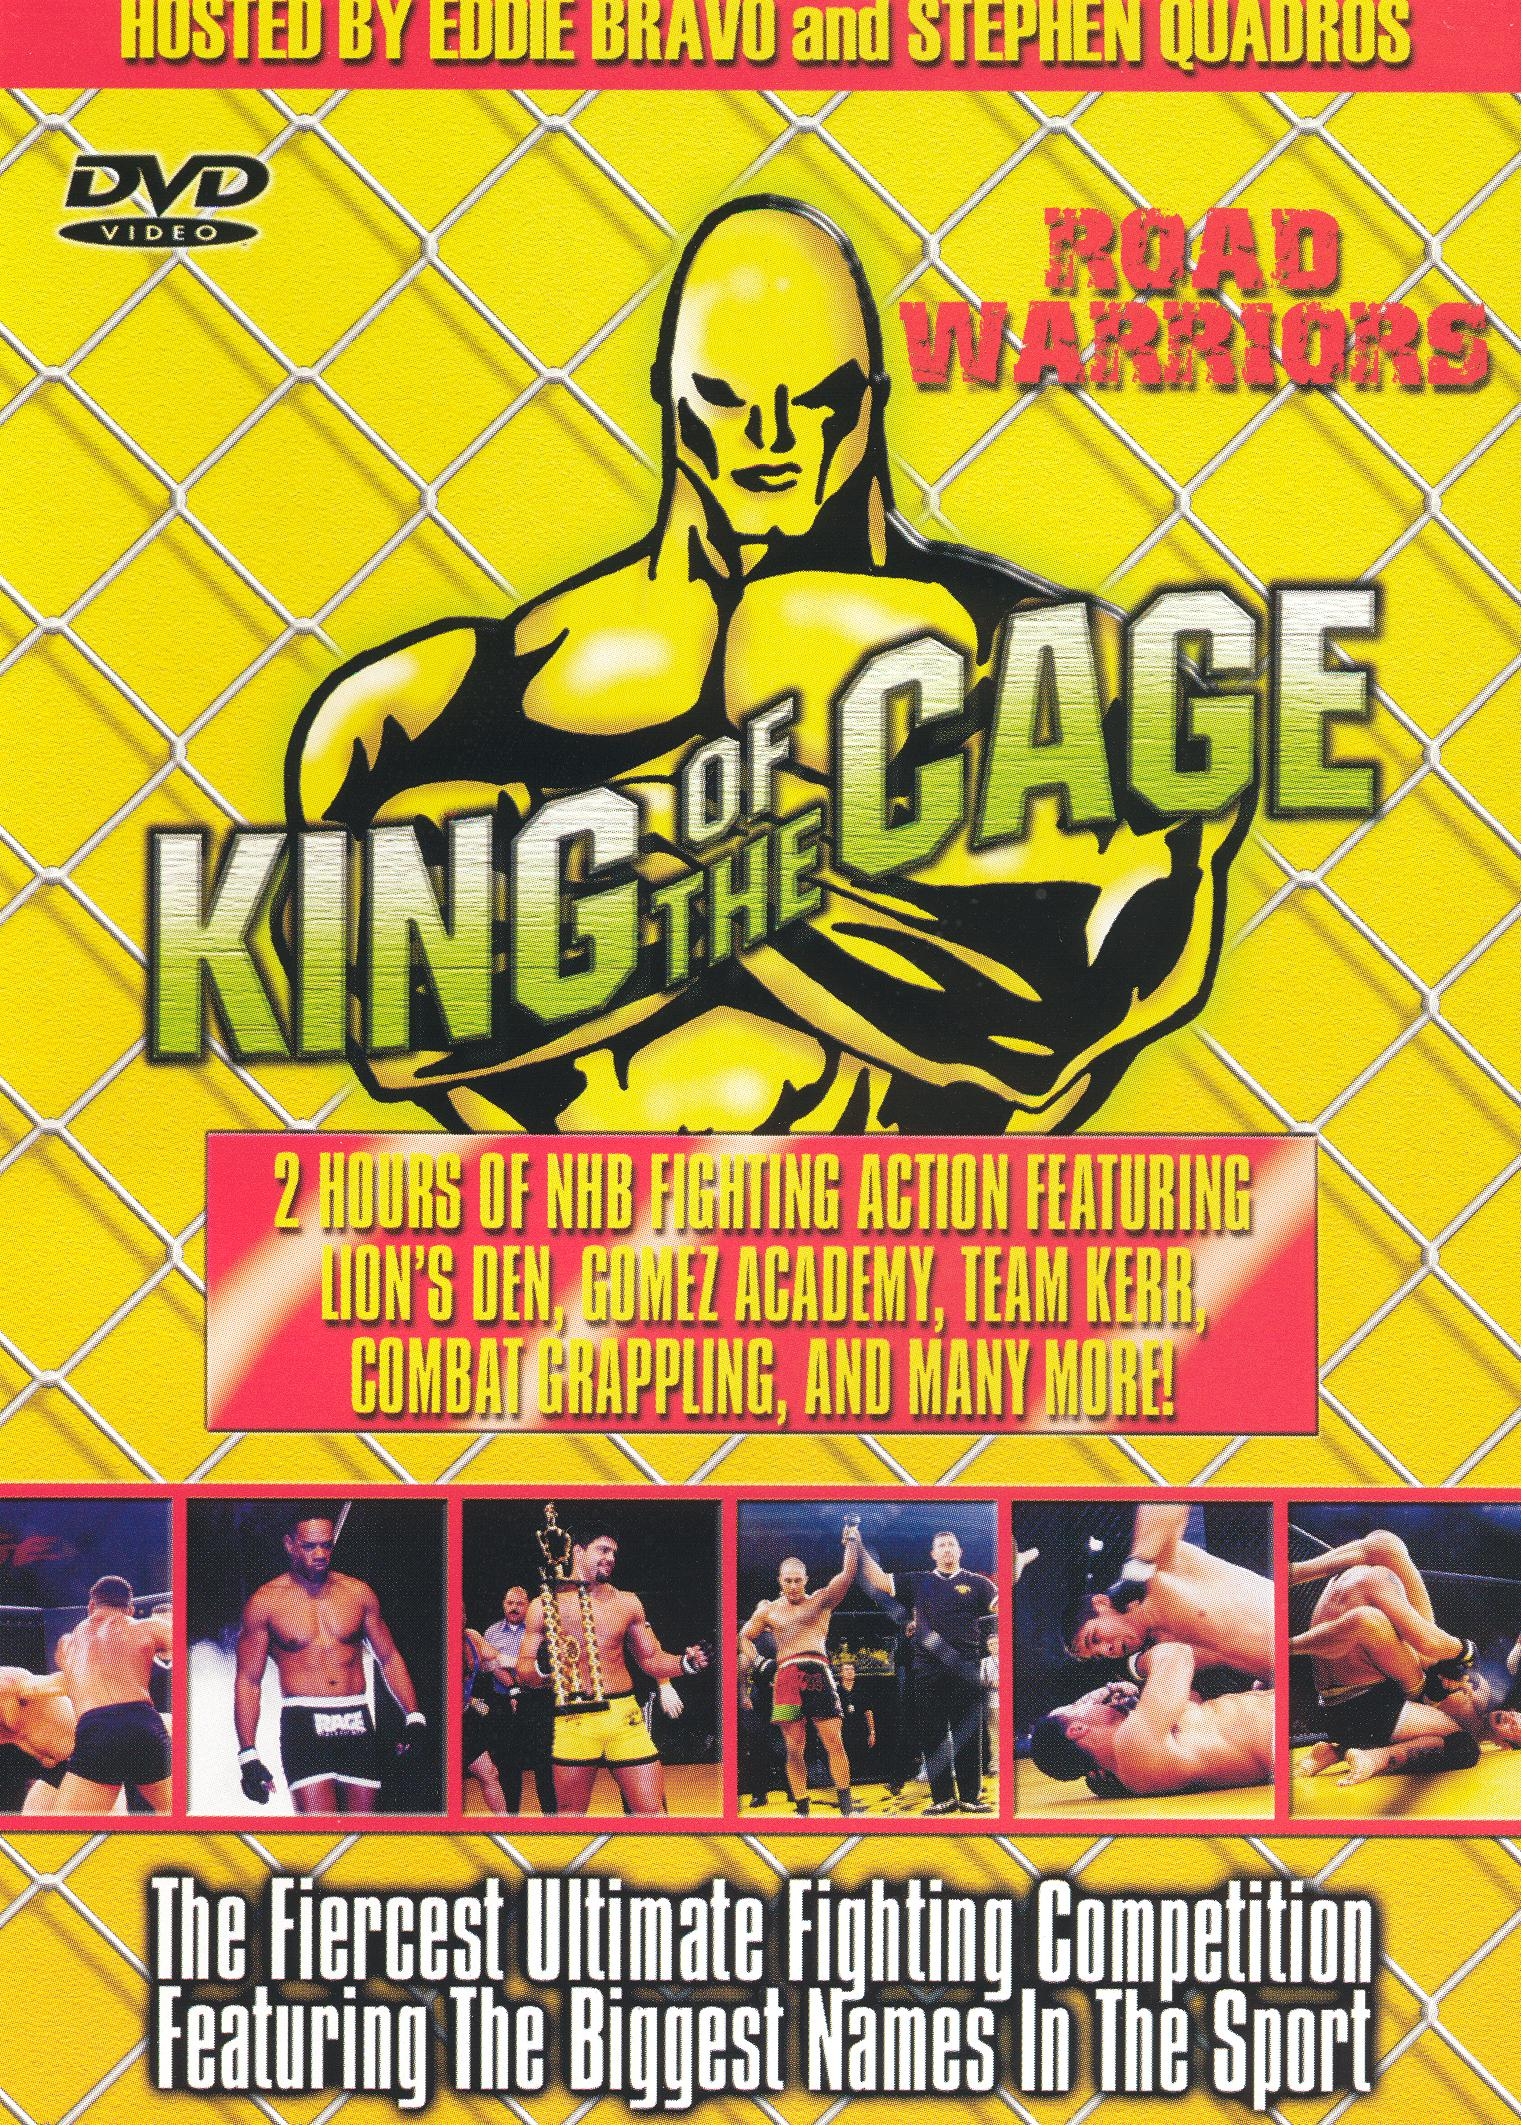 King of the Cage: Road Warriors